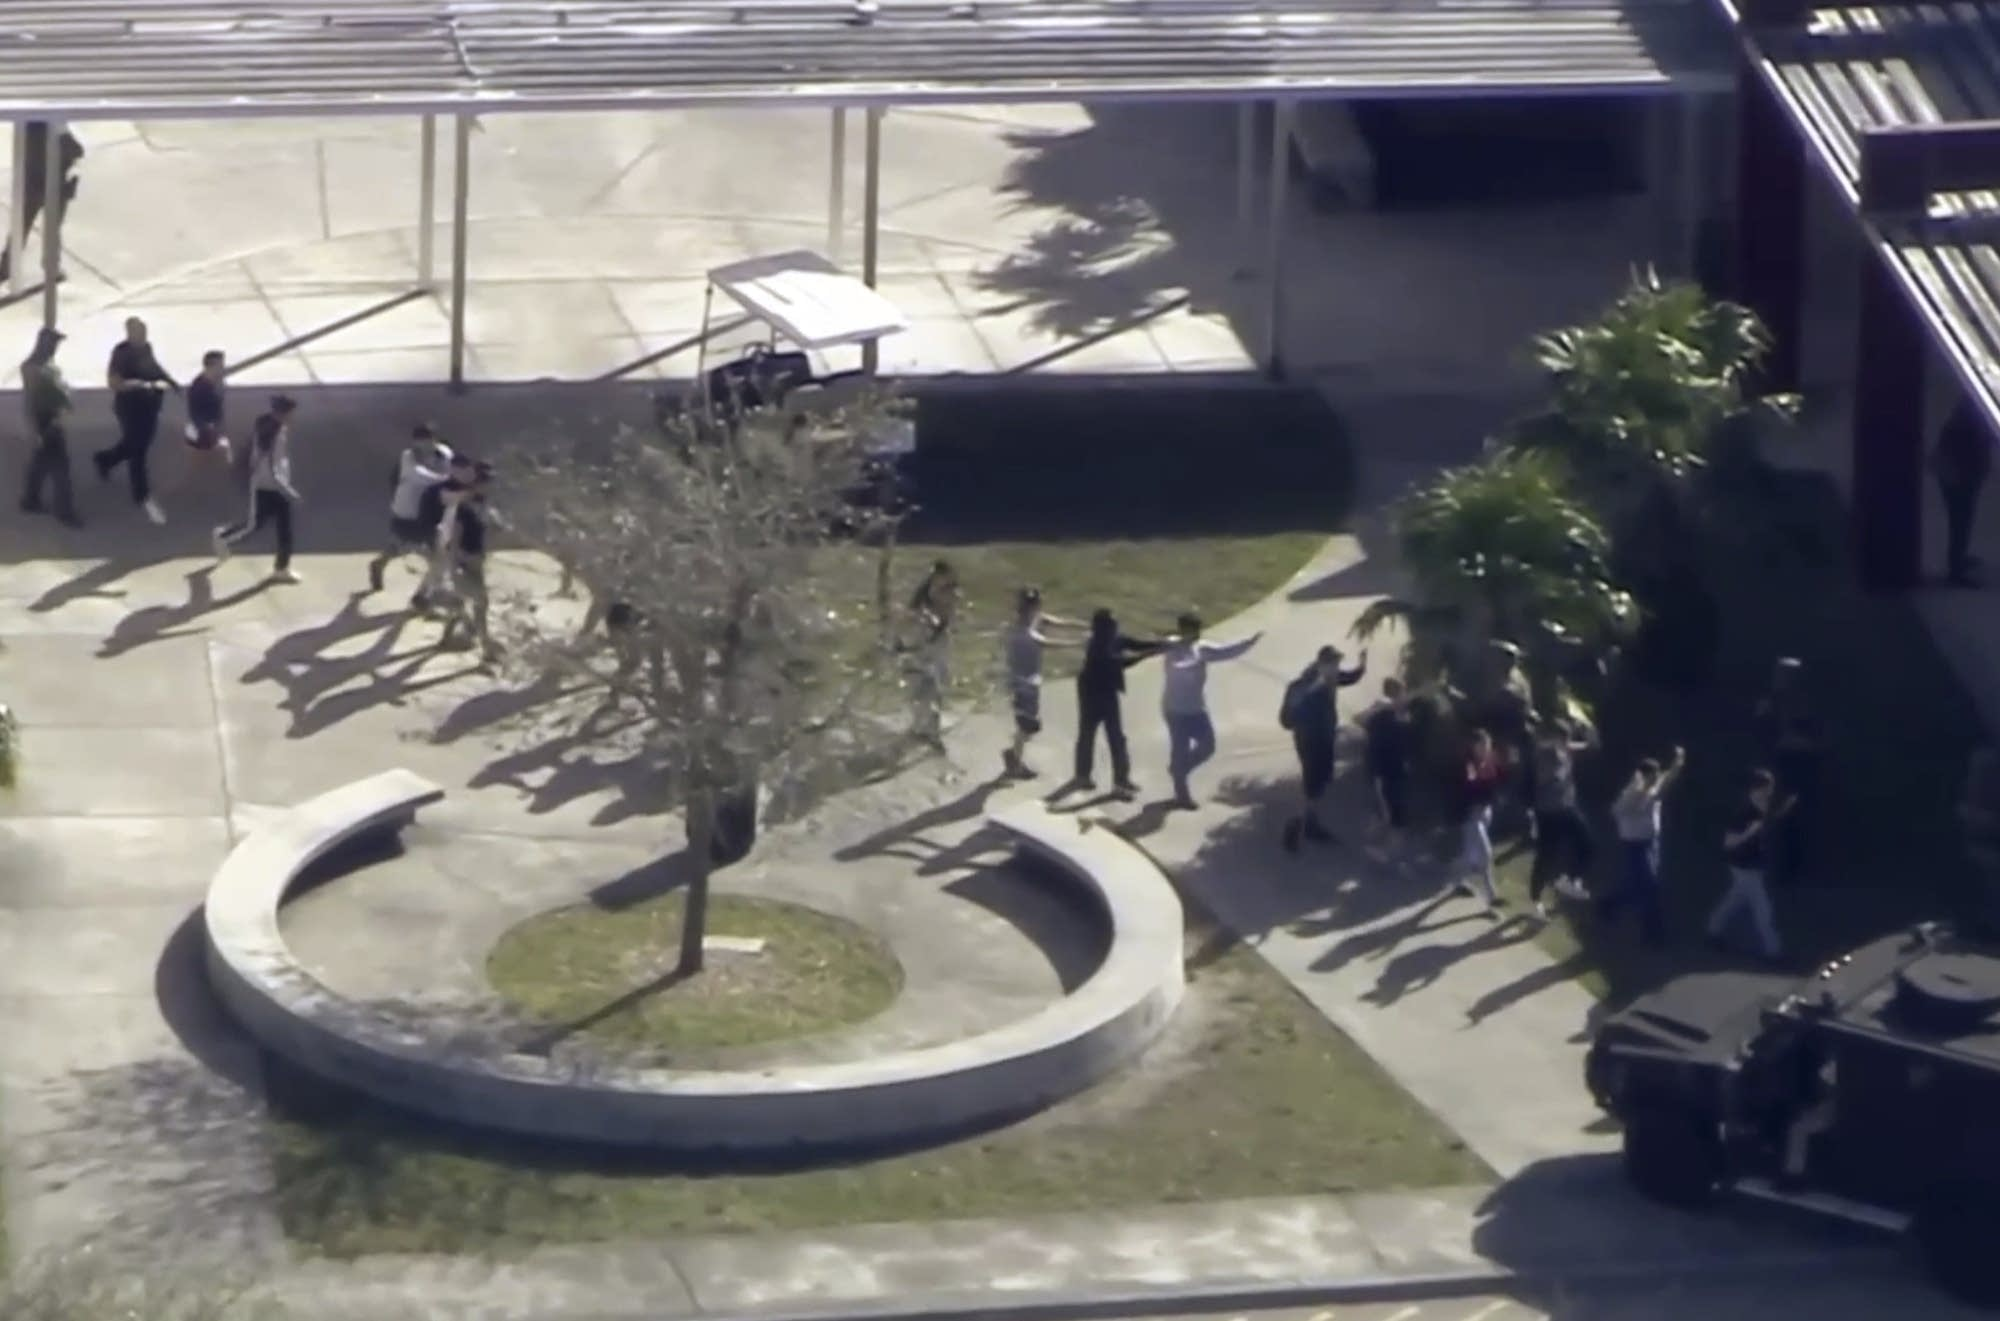 Students from the Marjory Stoneman Douglas High School evacuate.